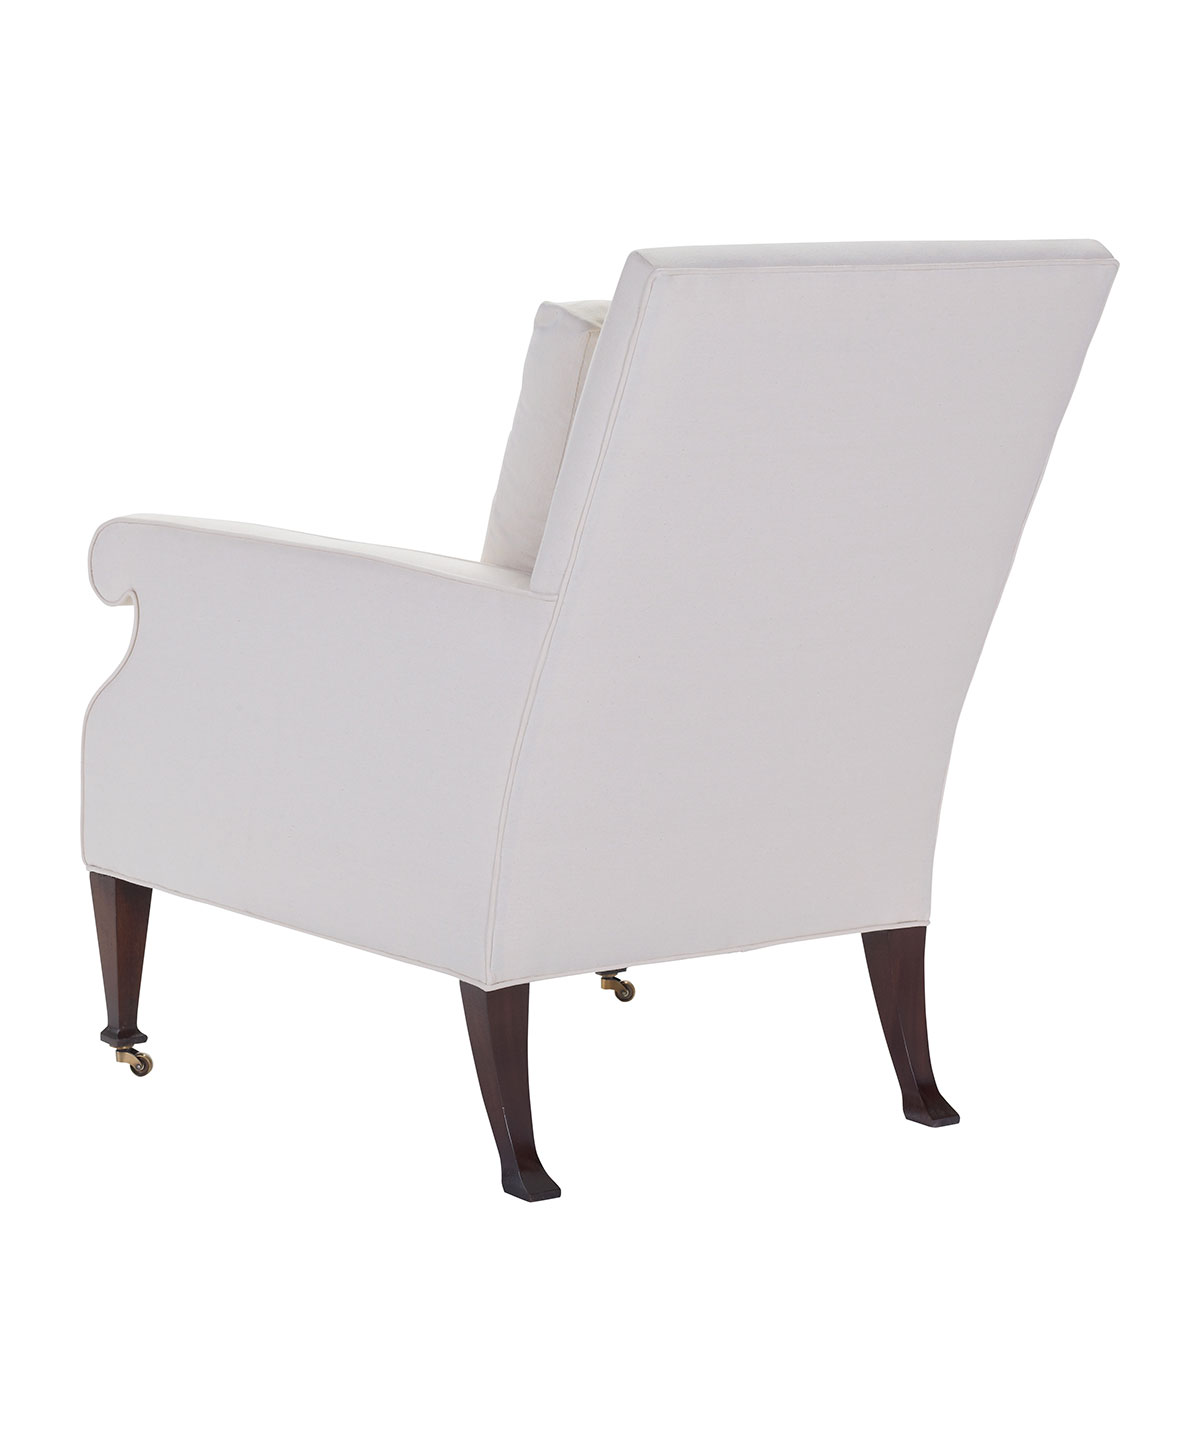 Everett Lounge Chair